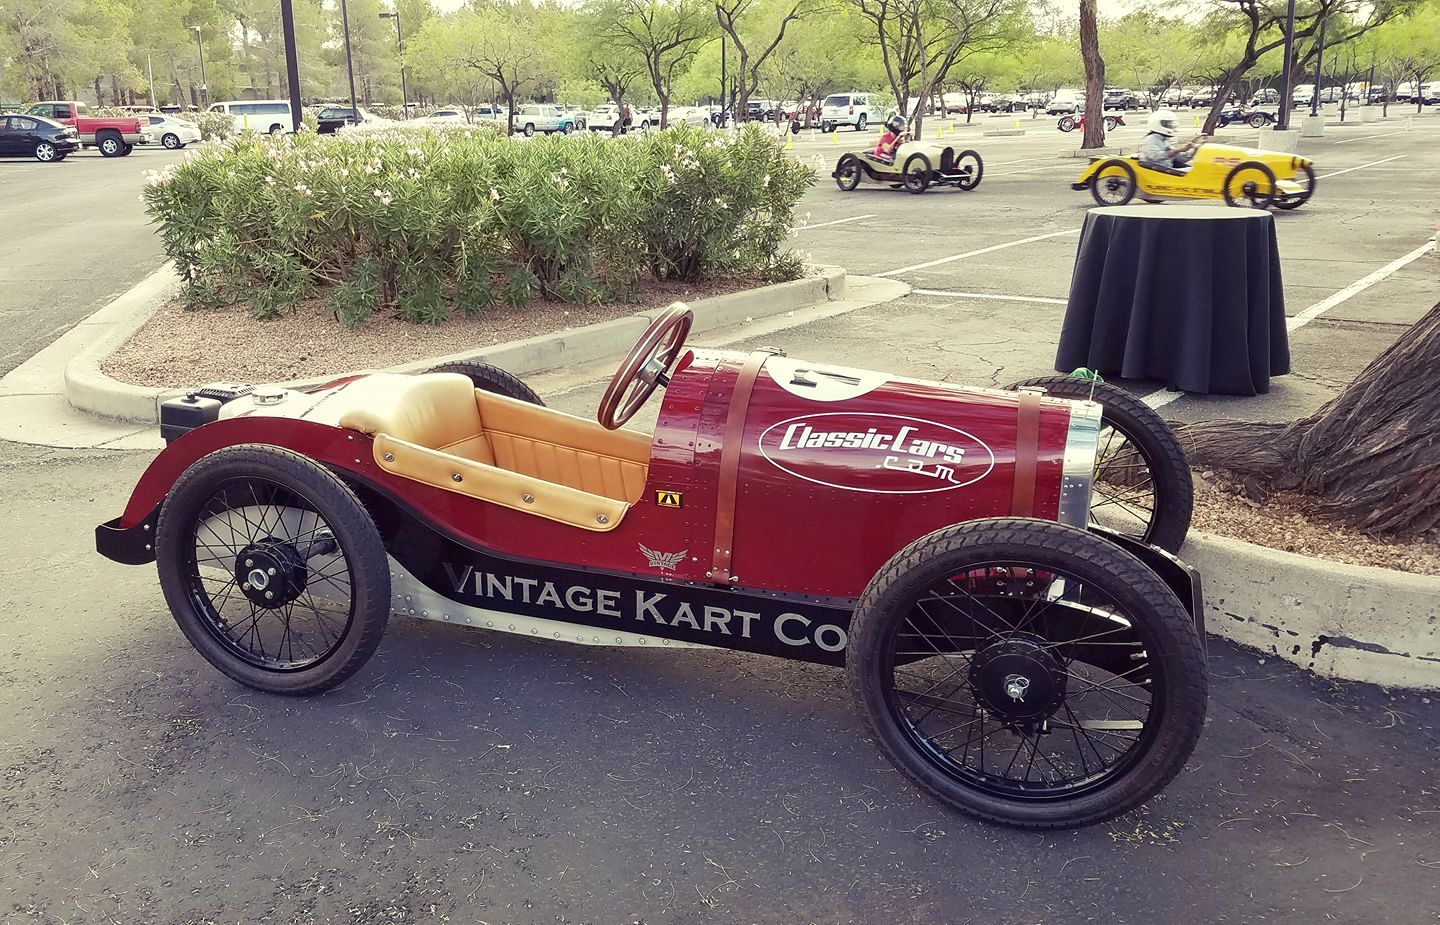 ClassicCars.com staff races back to the \'20s in Scottsdale event ...